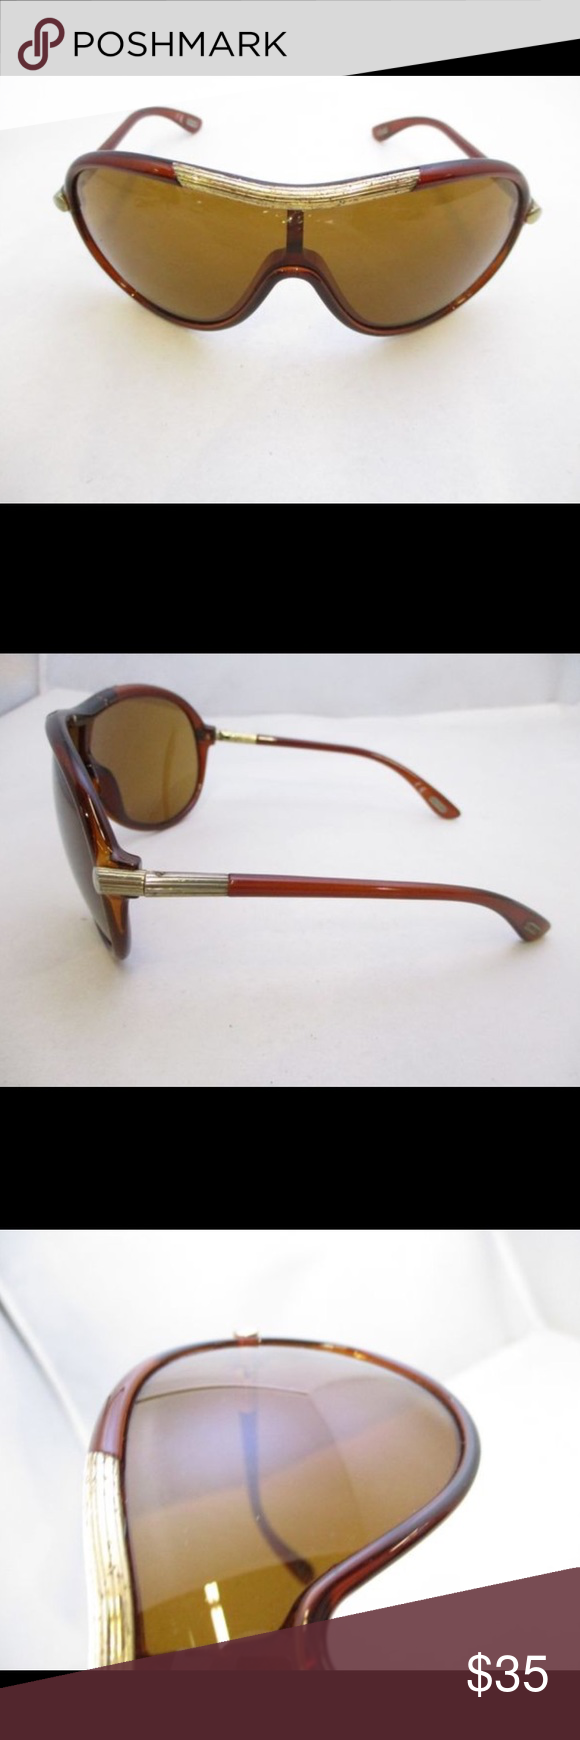 d90ba7a7bf Tom Ford Non Prescription Sunglasses Tom Ford Brown Nonprescription  Sunglasses. Measures  5.75